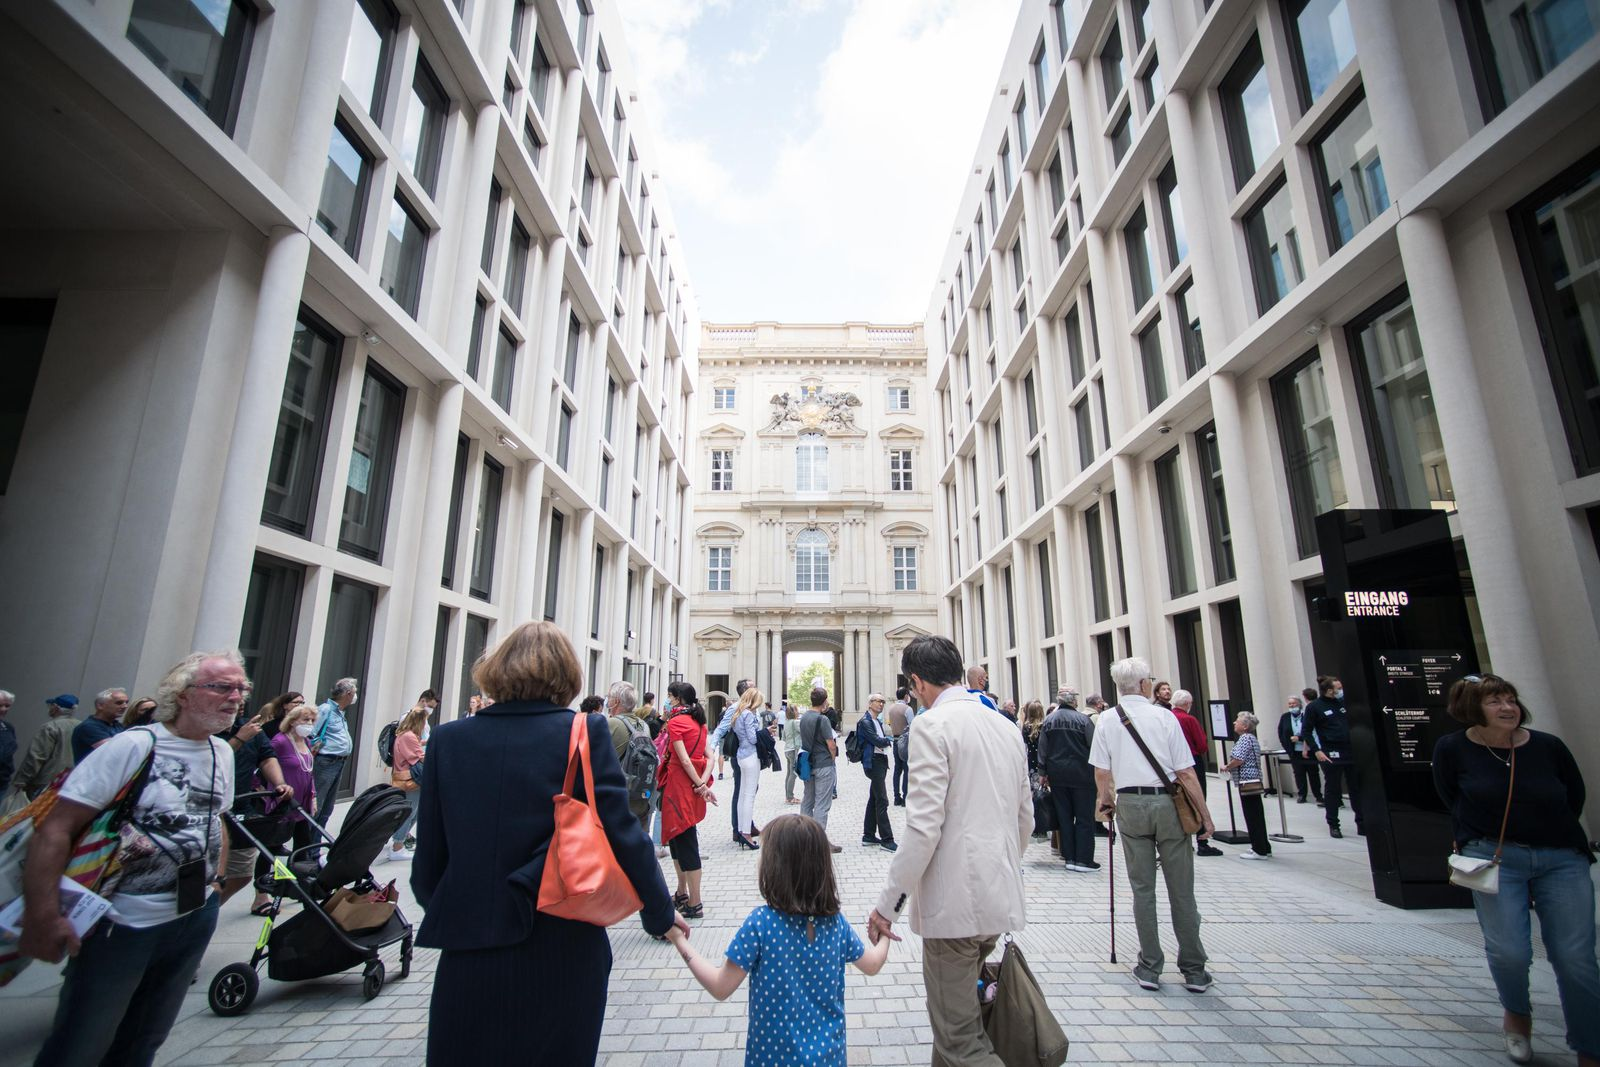 Why Germany's Newly Opened Humboldt Forum Is So Controversial